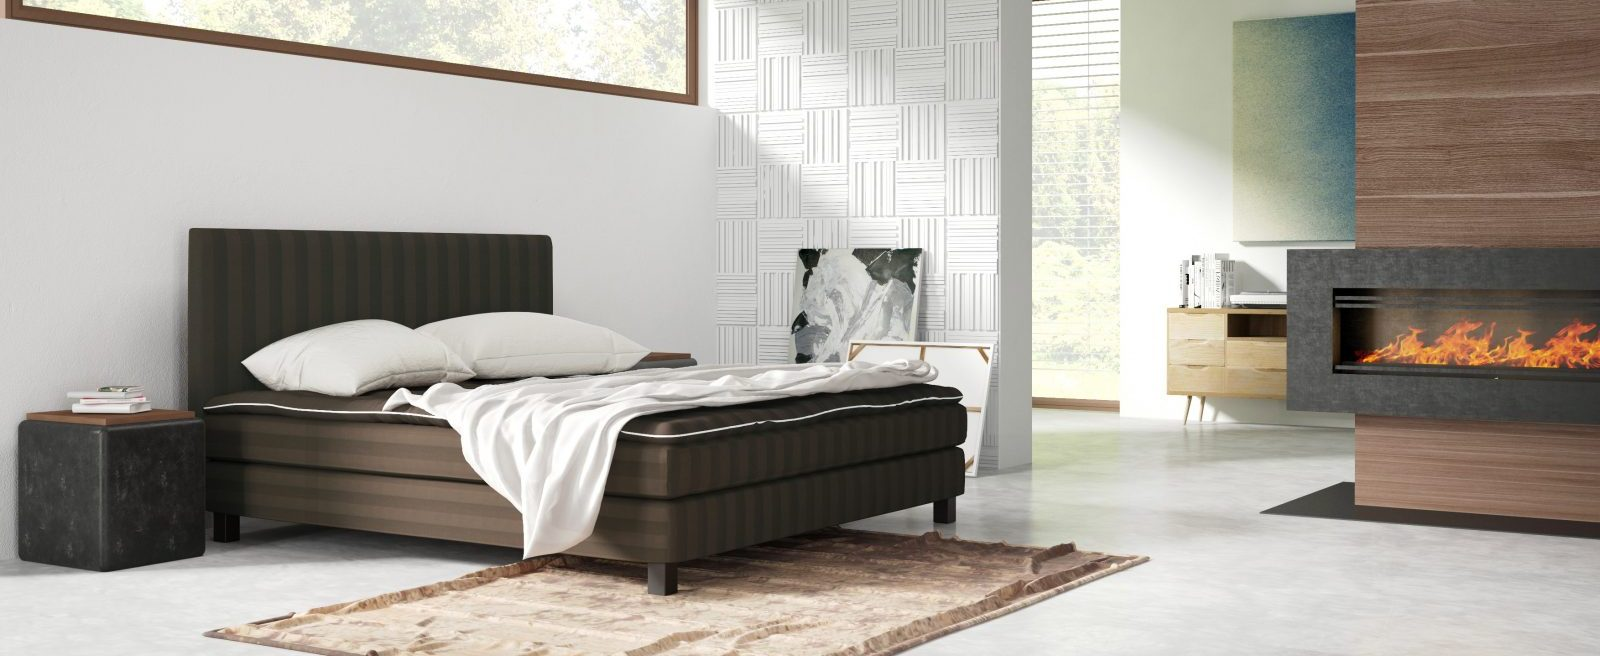 pauly-beds-continental-luxury-mattress-catherine-small